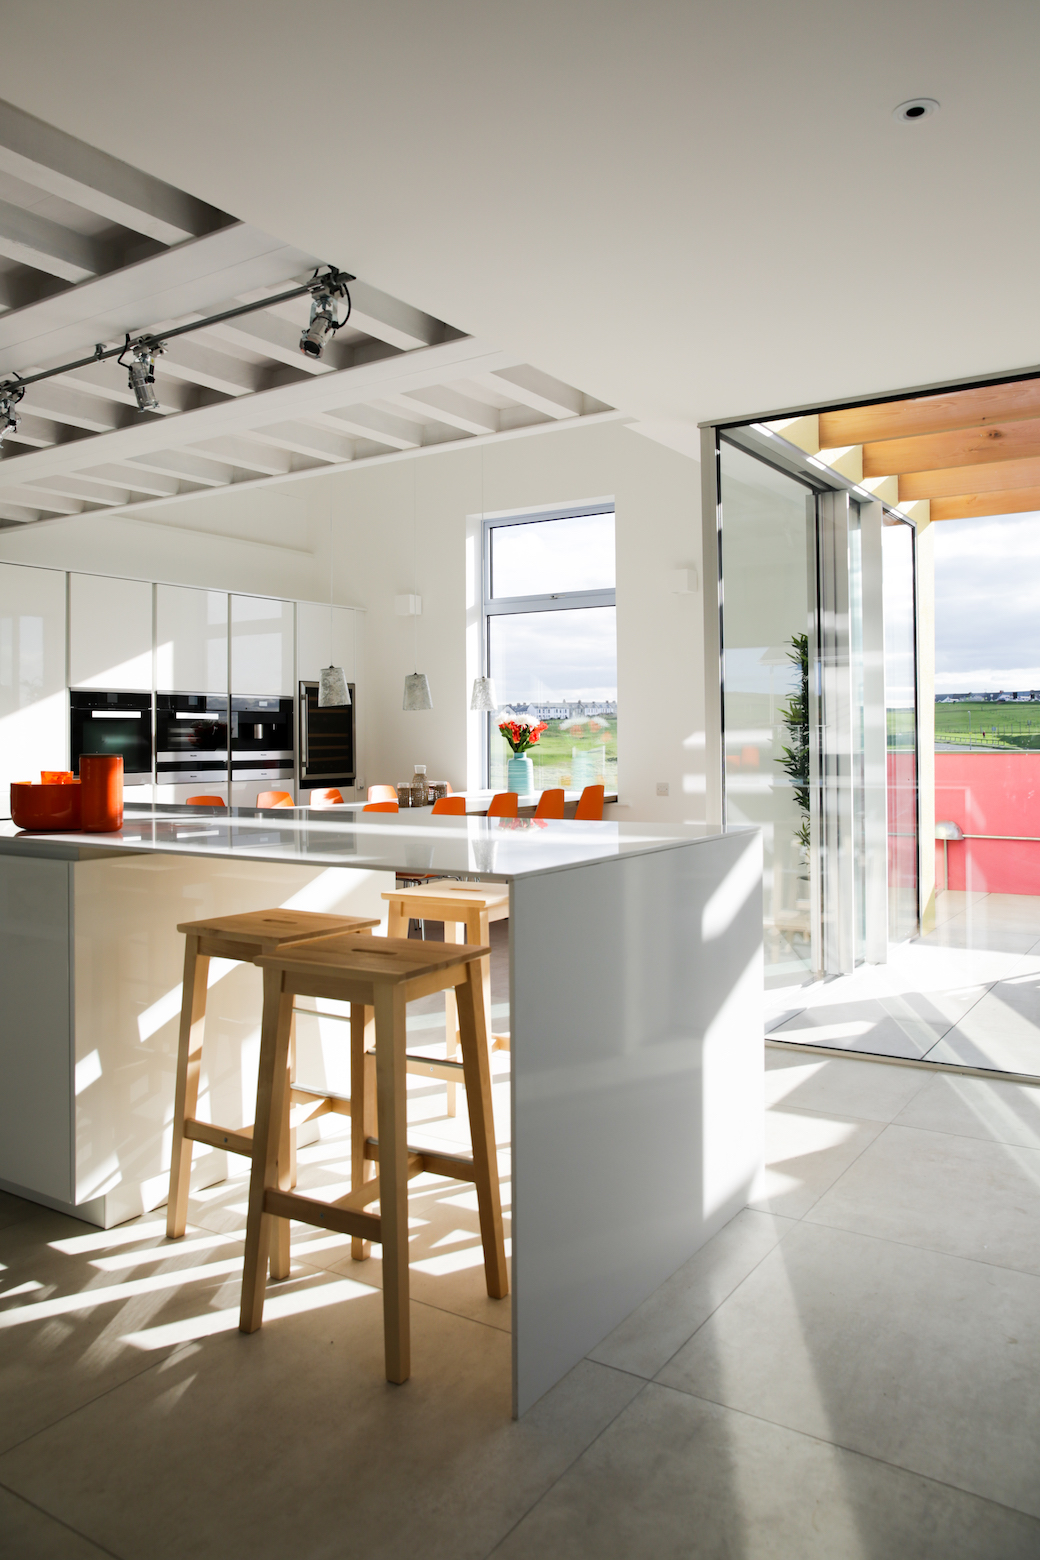 Ash Row, Cornwall, by Hogarth Architects, marketed by Aucoot.